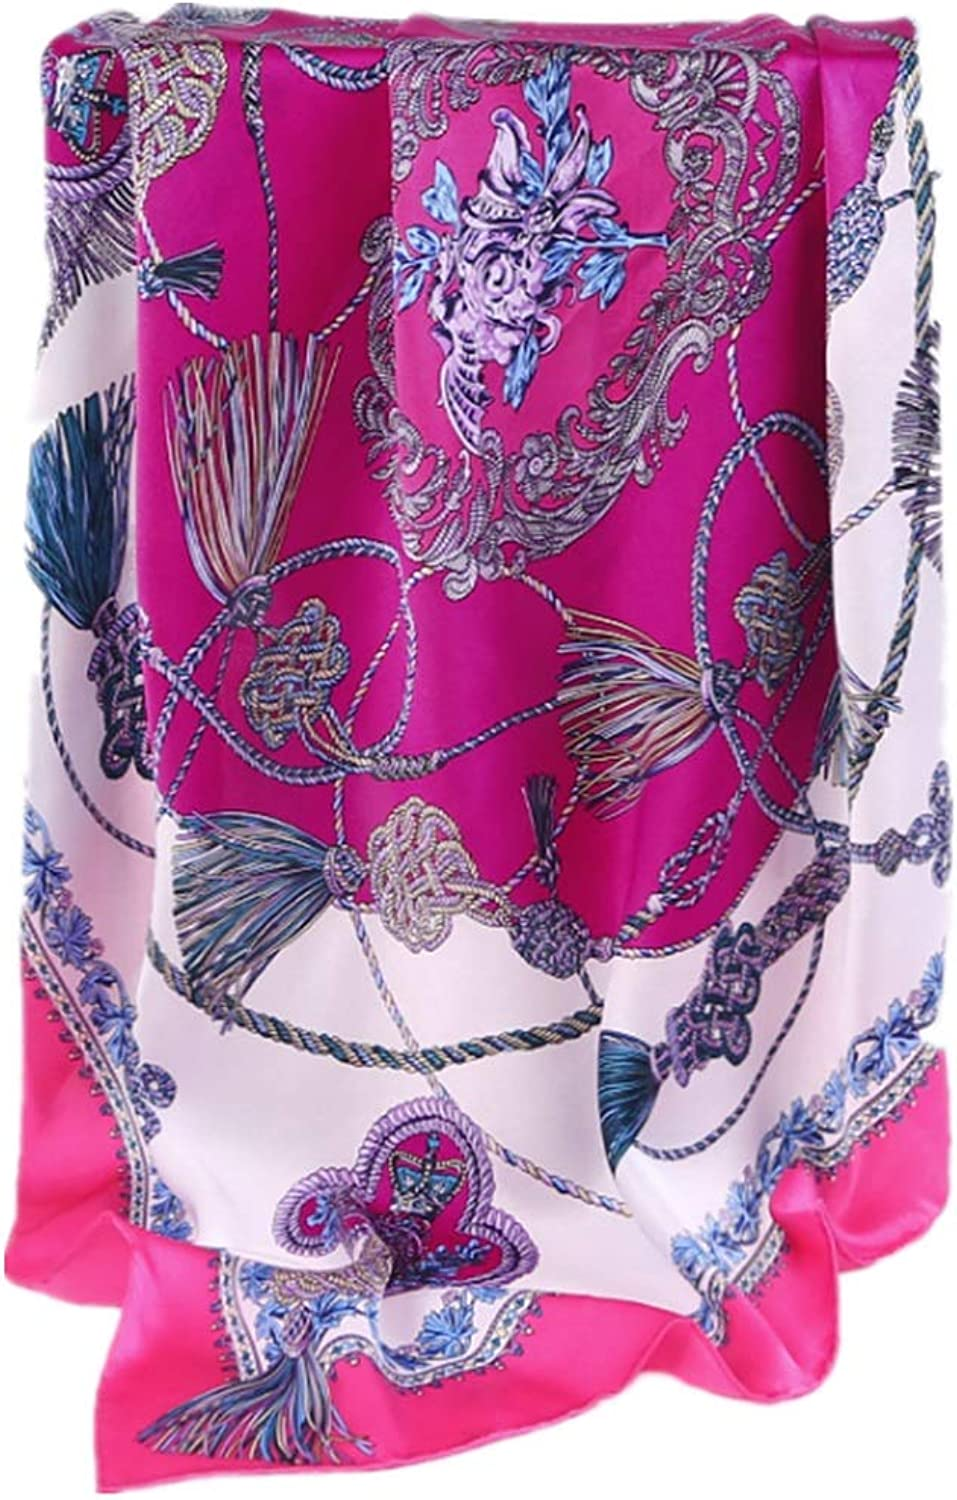 Women's Silk Scarf Spring and Summer Silk Silk Big Square Scarf Classic Chain Silk Scarf European and American Gifts for Ladies (color   Purple)